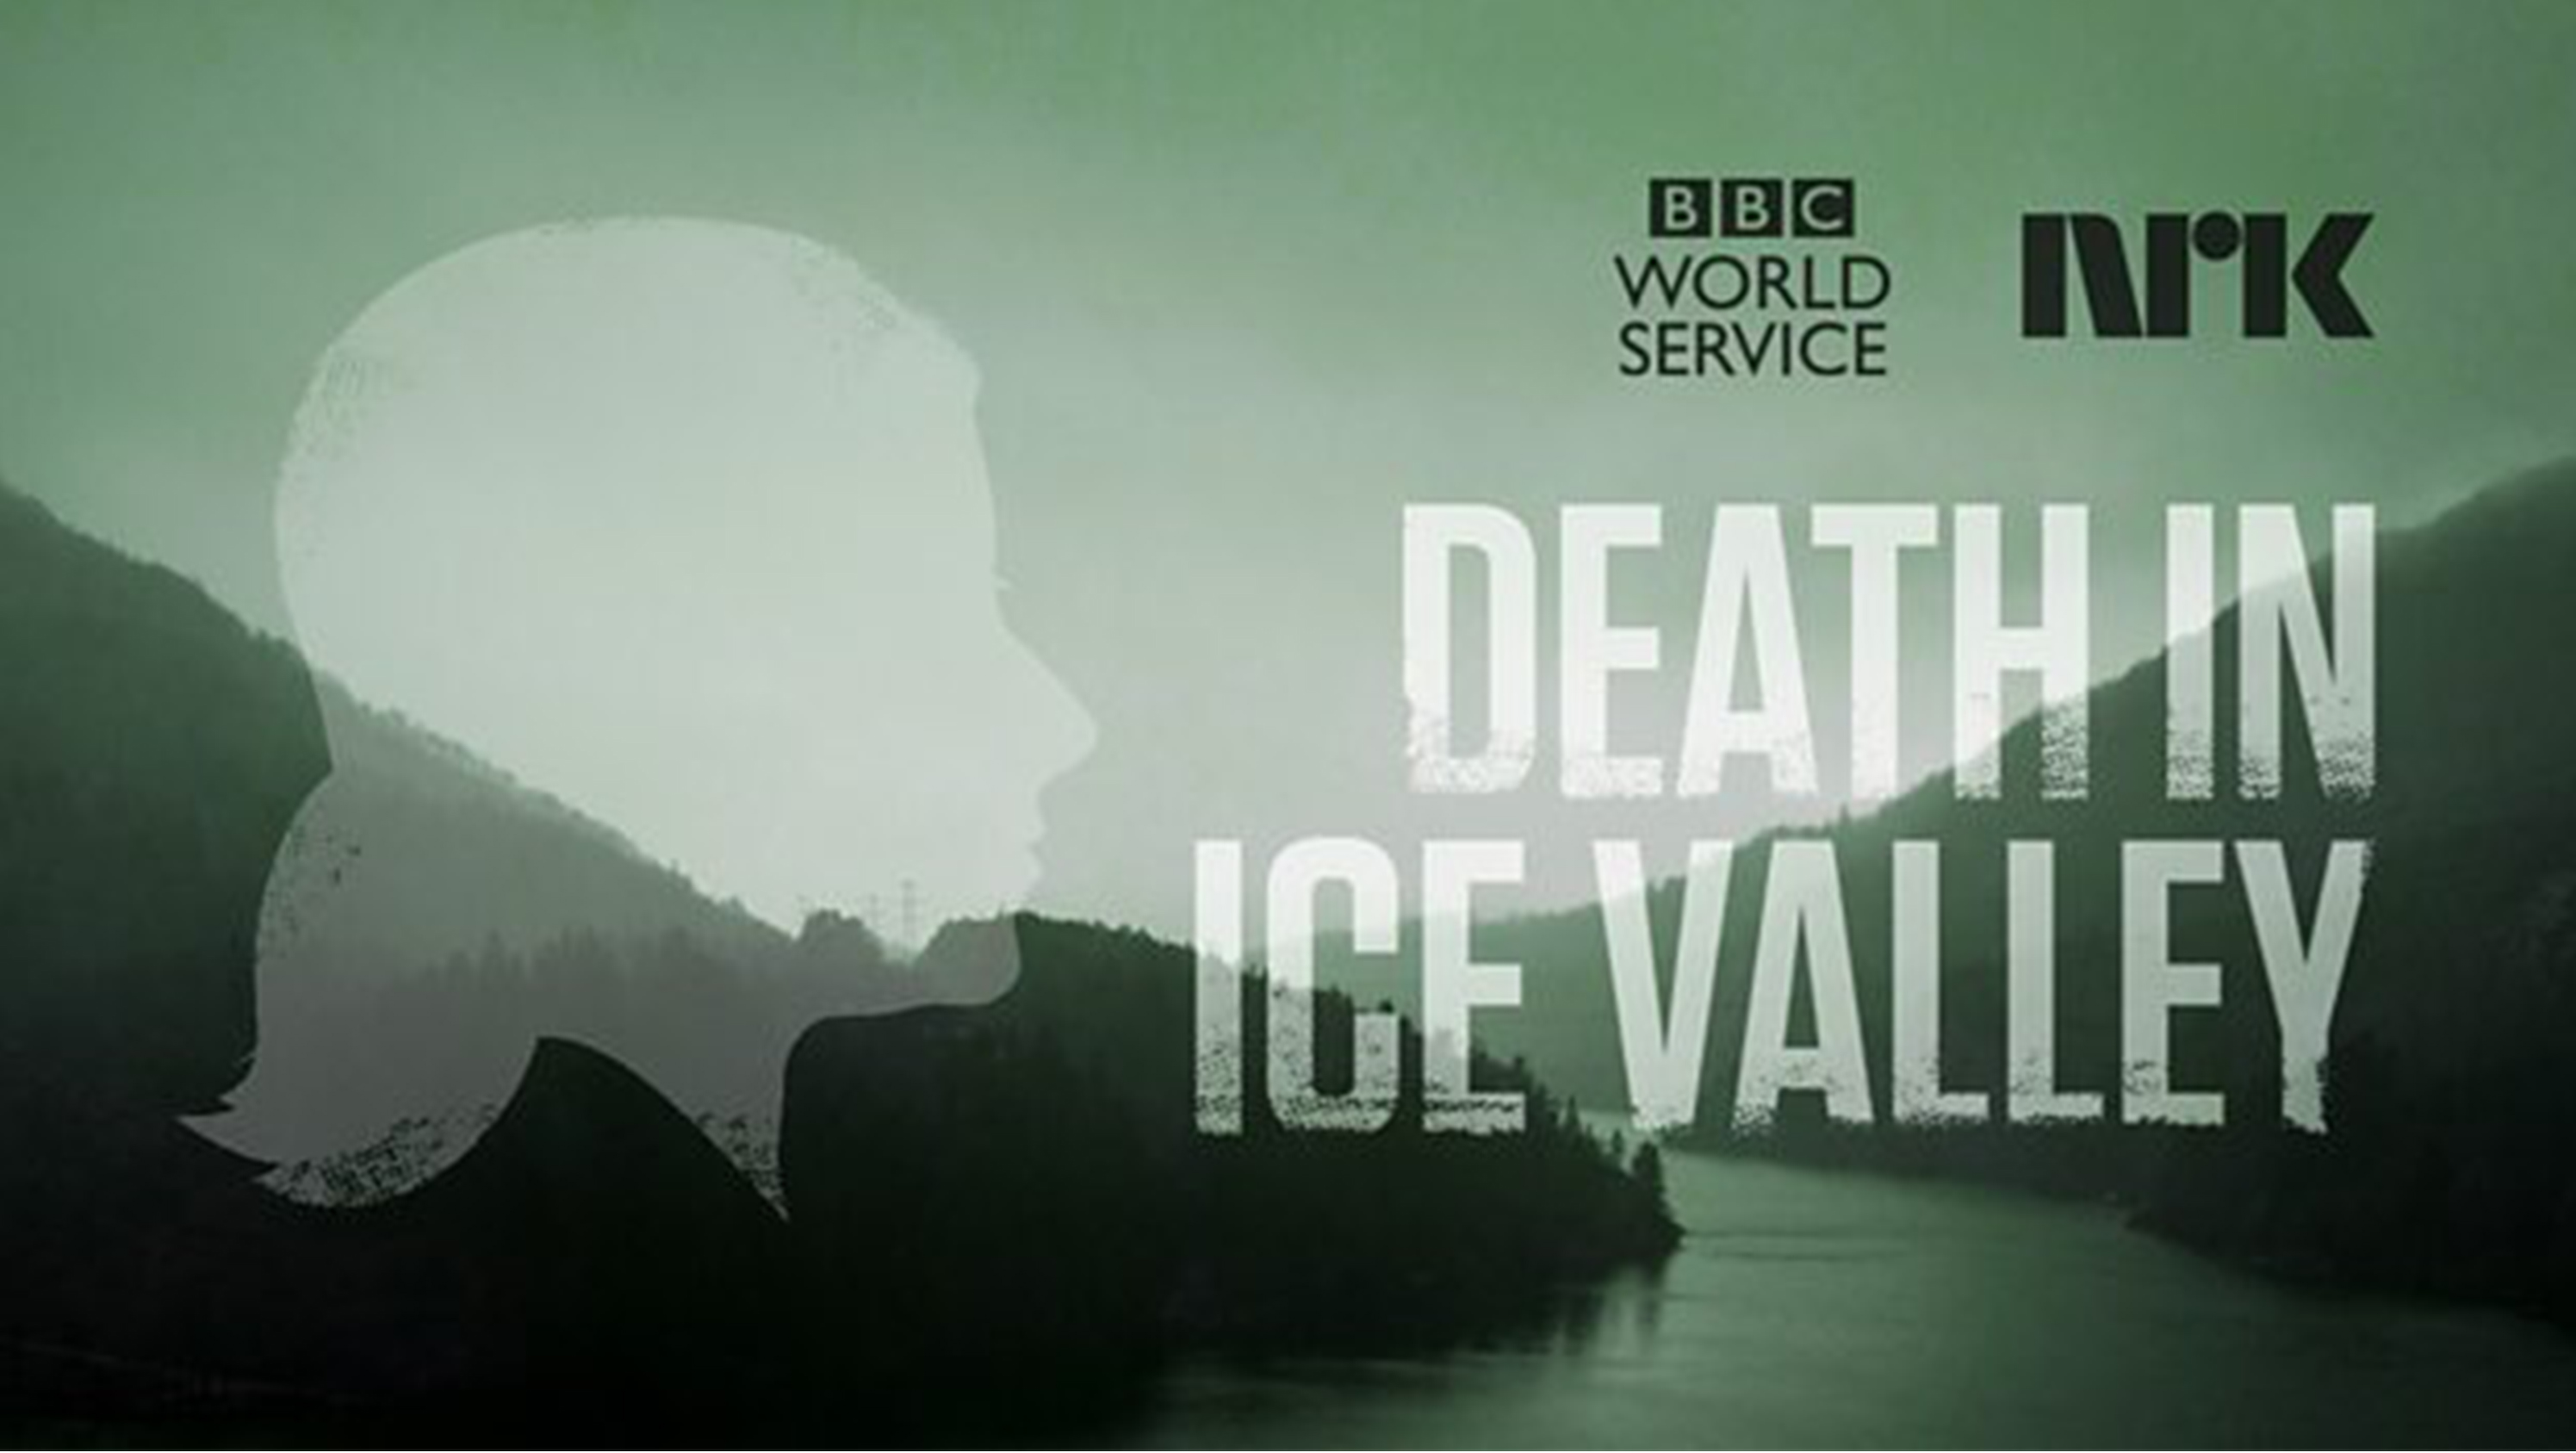 BBC World Service: Death in Ice Valley Podcast Series